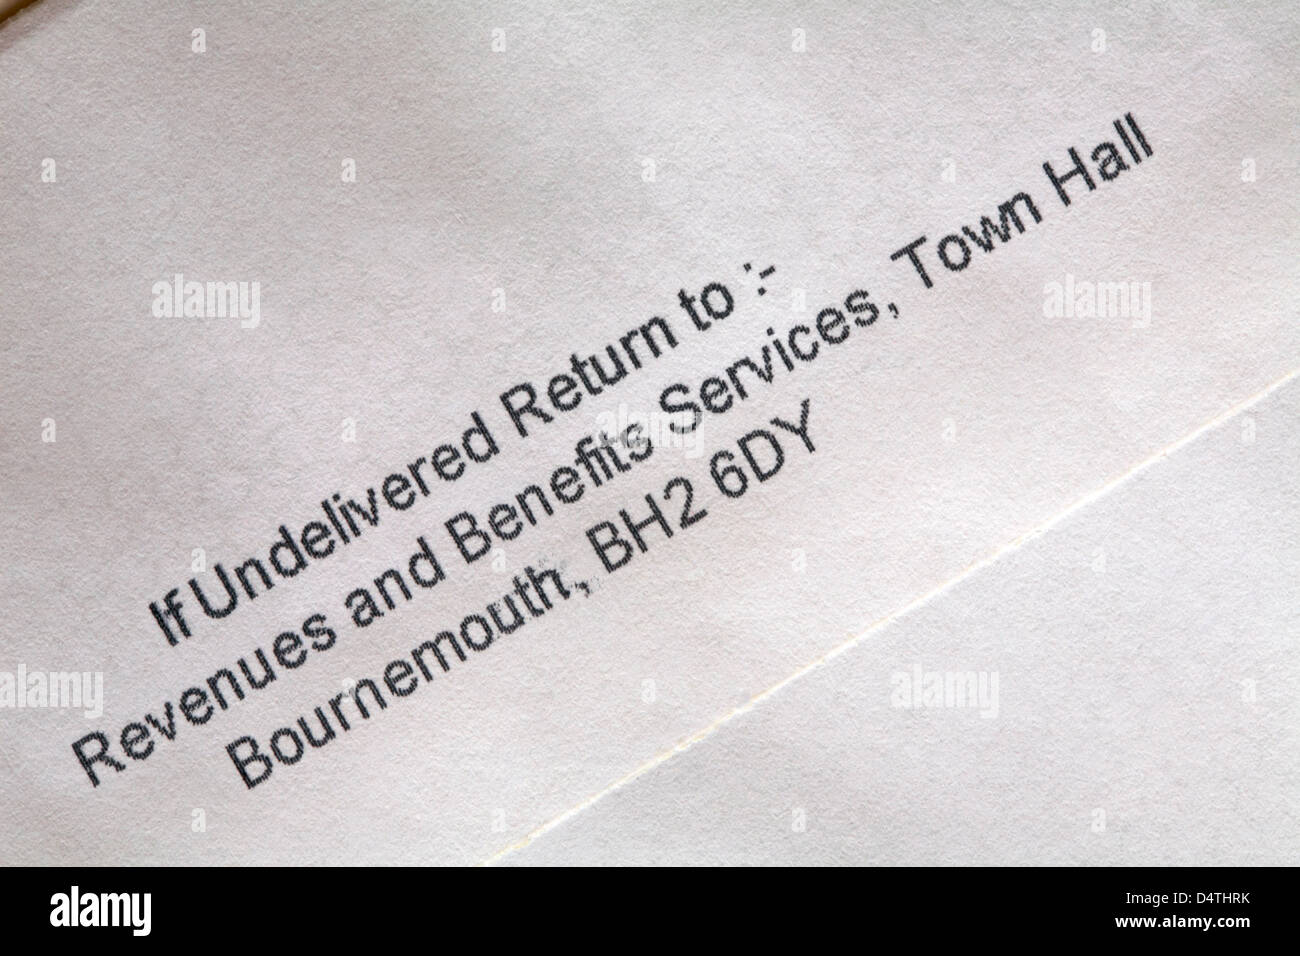 if undelivered return to Revenues and Benefits Services, Town Hall, Bournemouth - back of envelope sending out Council - Stock Image